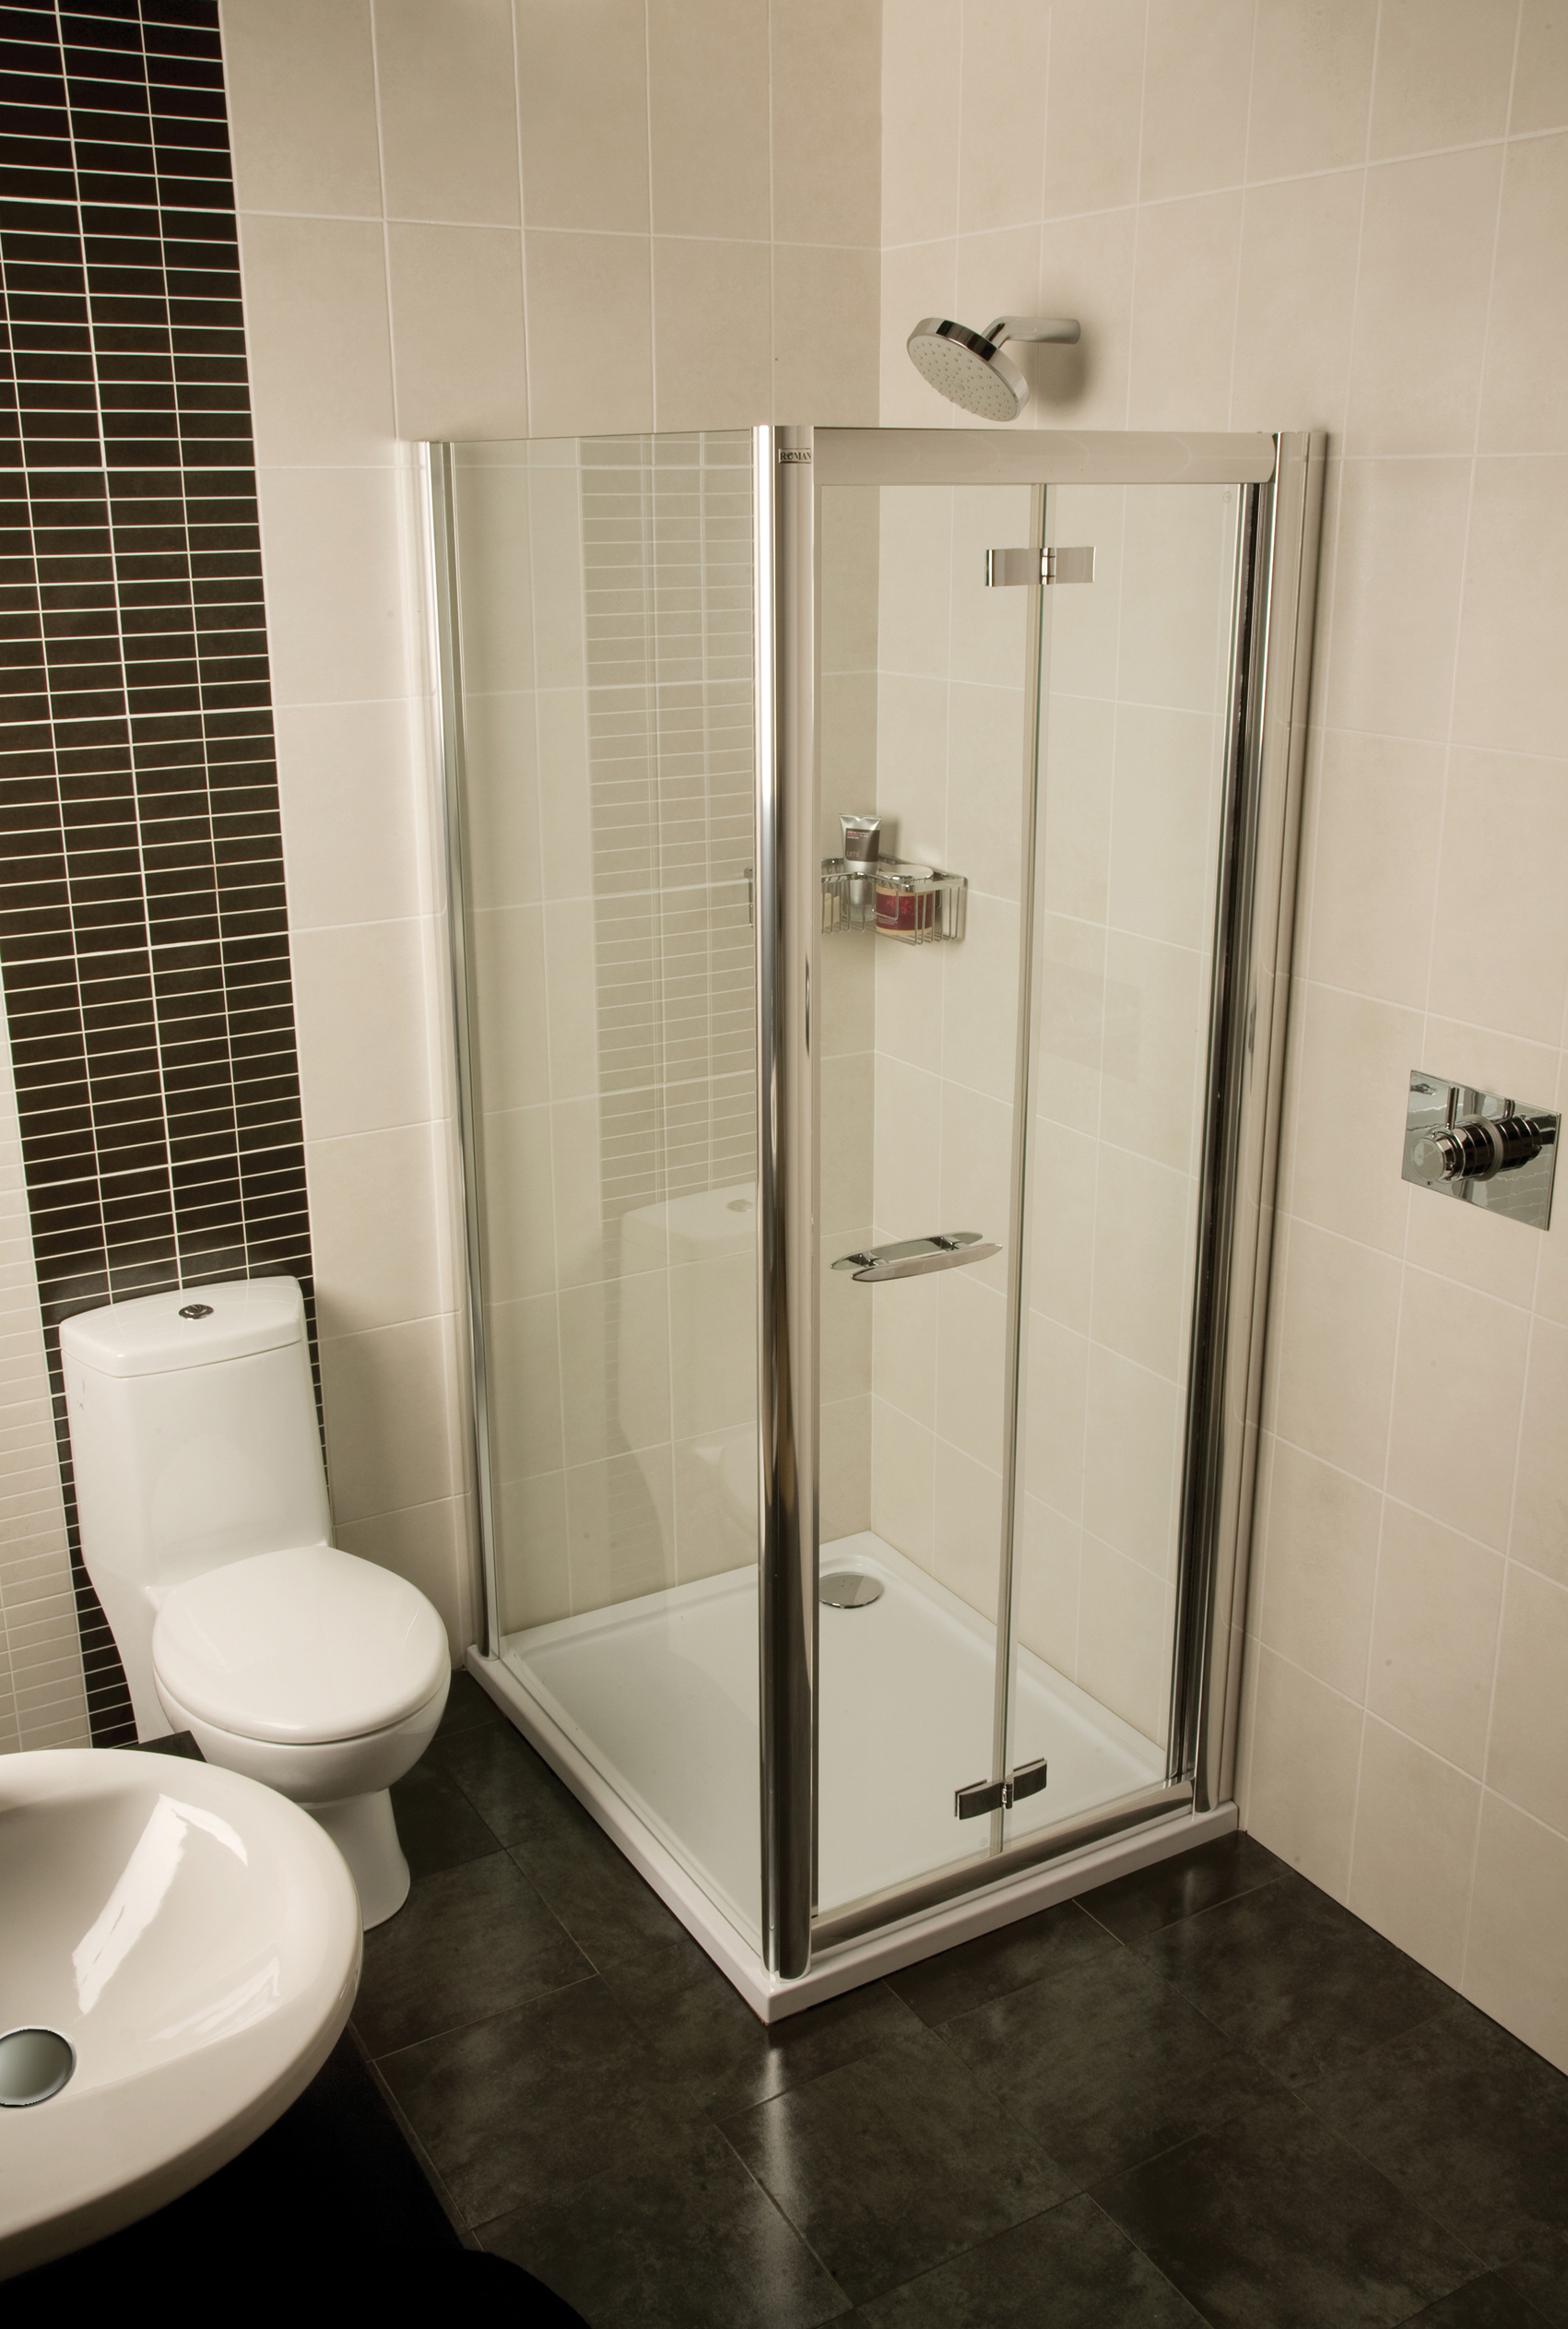 Space saving shower solutions for small bathroom roman - Bathroom shower designs small spaces ...